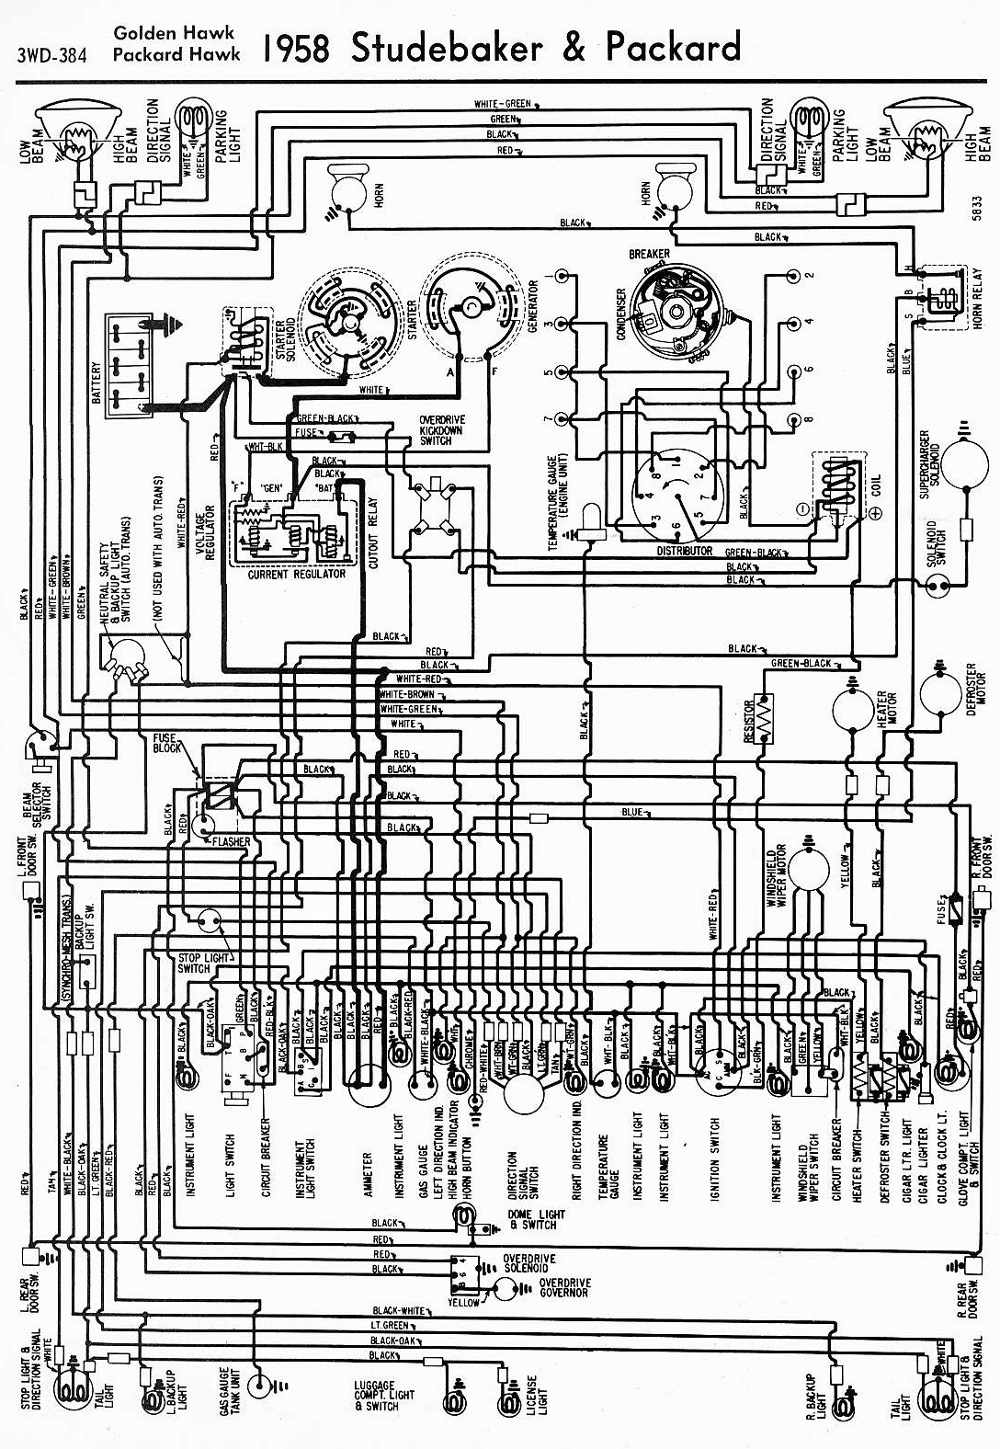 Wiring Diagrams 911  1958 Studebaker And Packard Golden